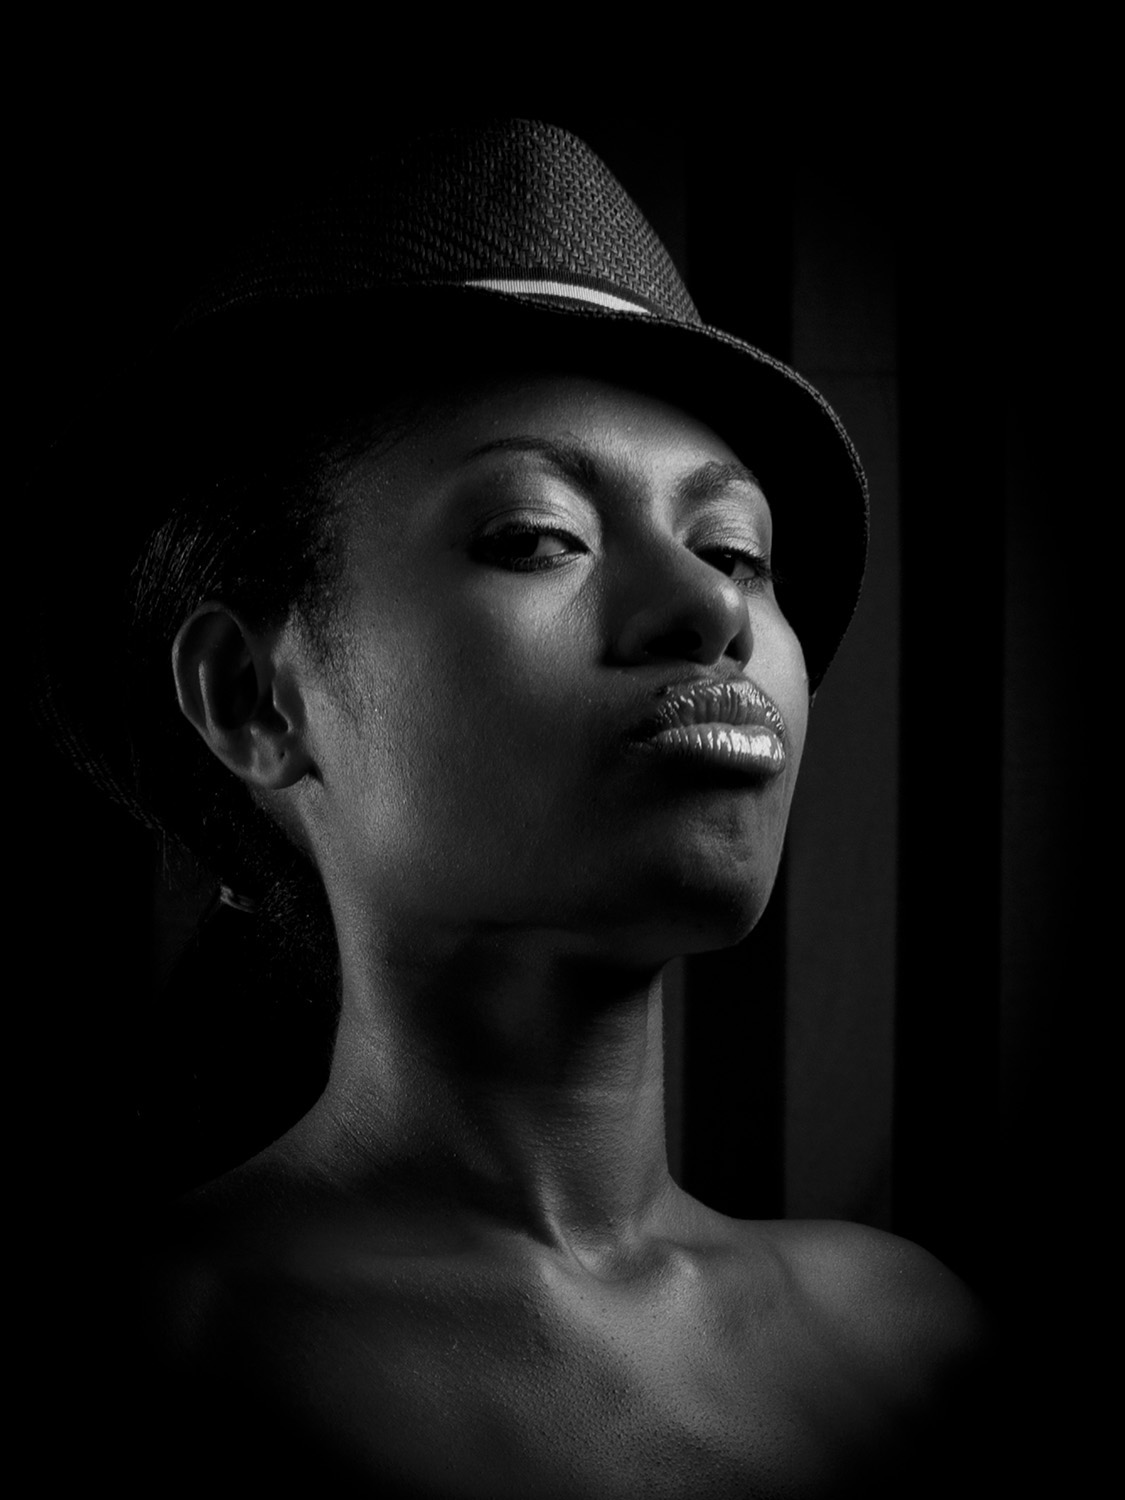 image of AARONTAIT COPYRIGHTED 2014 111 ADVERTISING PNG GIRL BLACK AND WHITE PORTRAIT FASHION BEAUTY